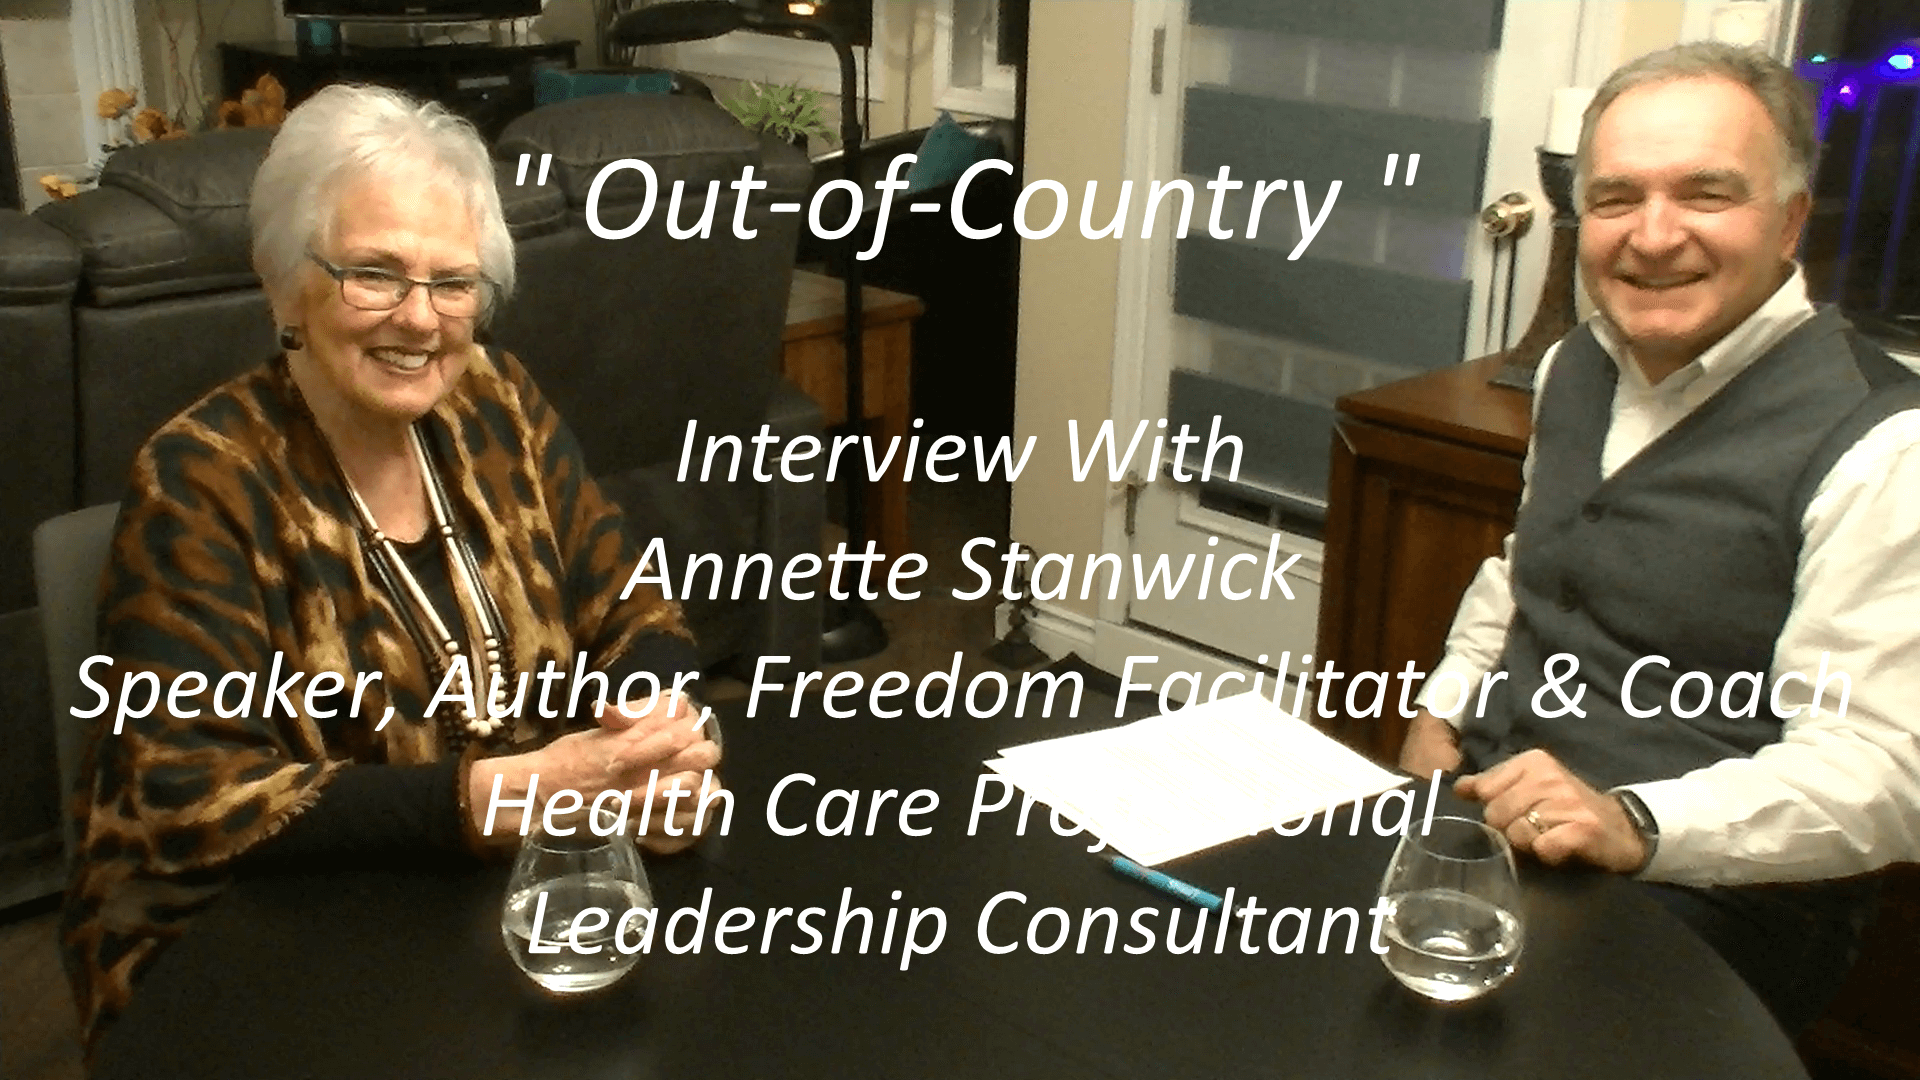 Out-of-Country interview of Annette Stanwick